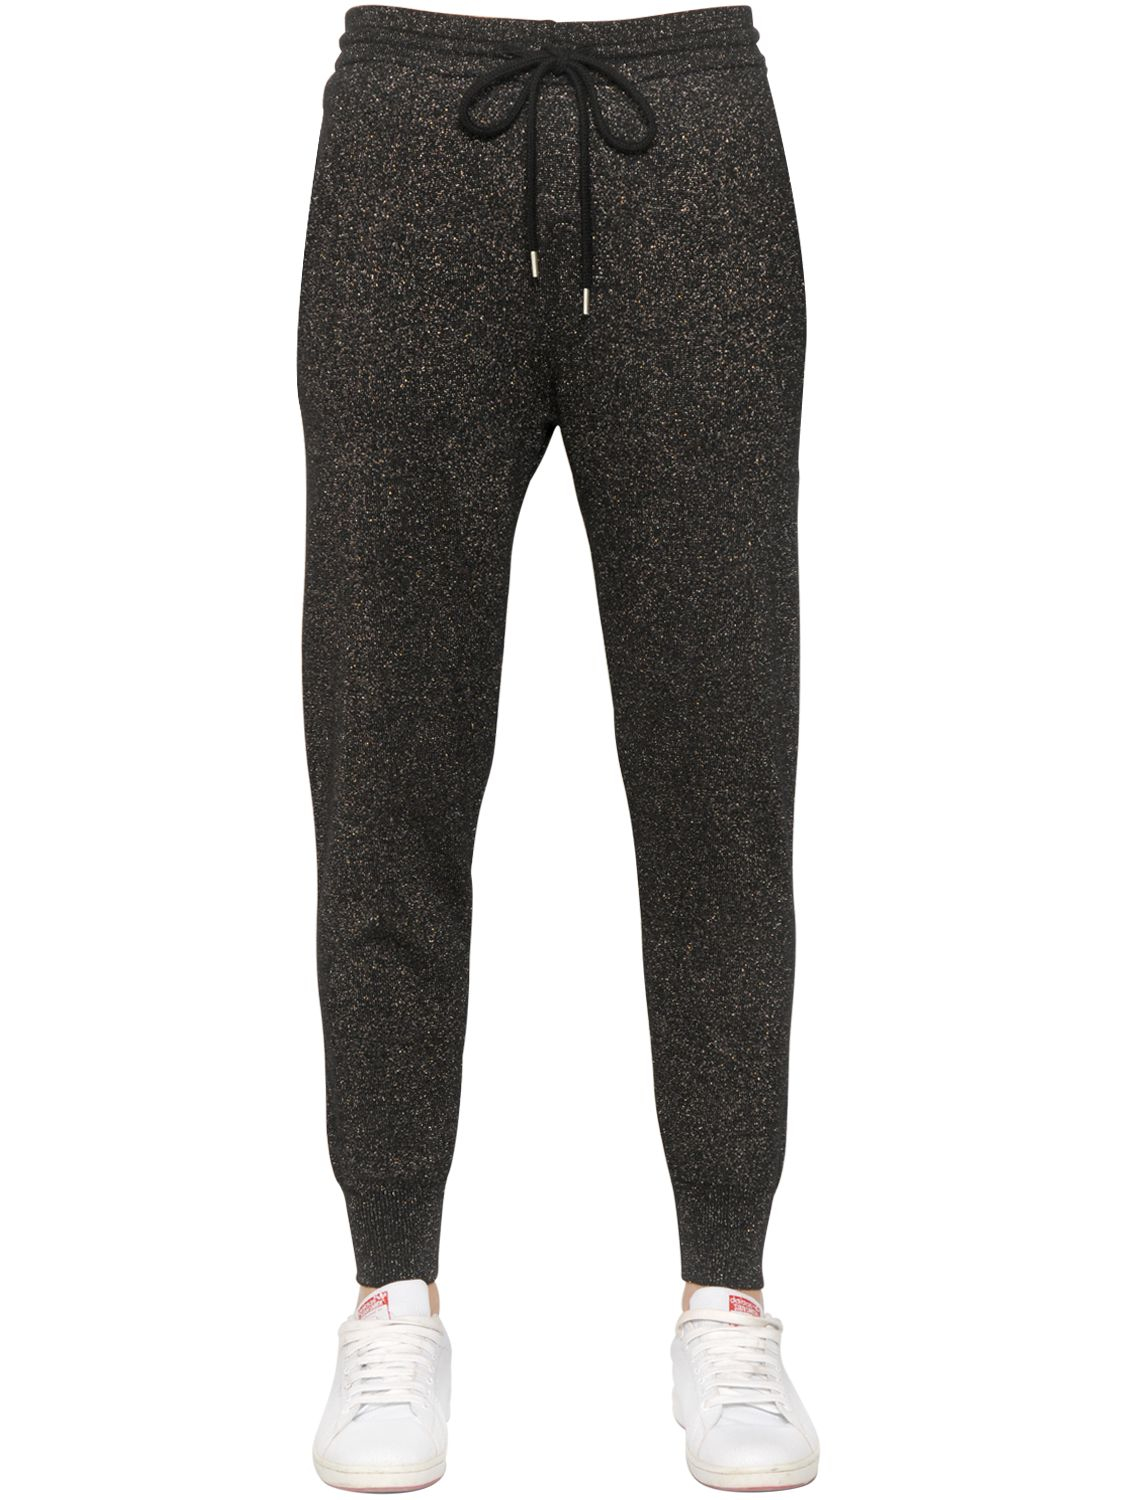 Simple Details About Adidas Jogging Pants Women SLIM TPquot AY8127 Black